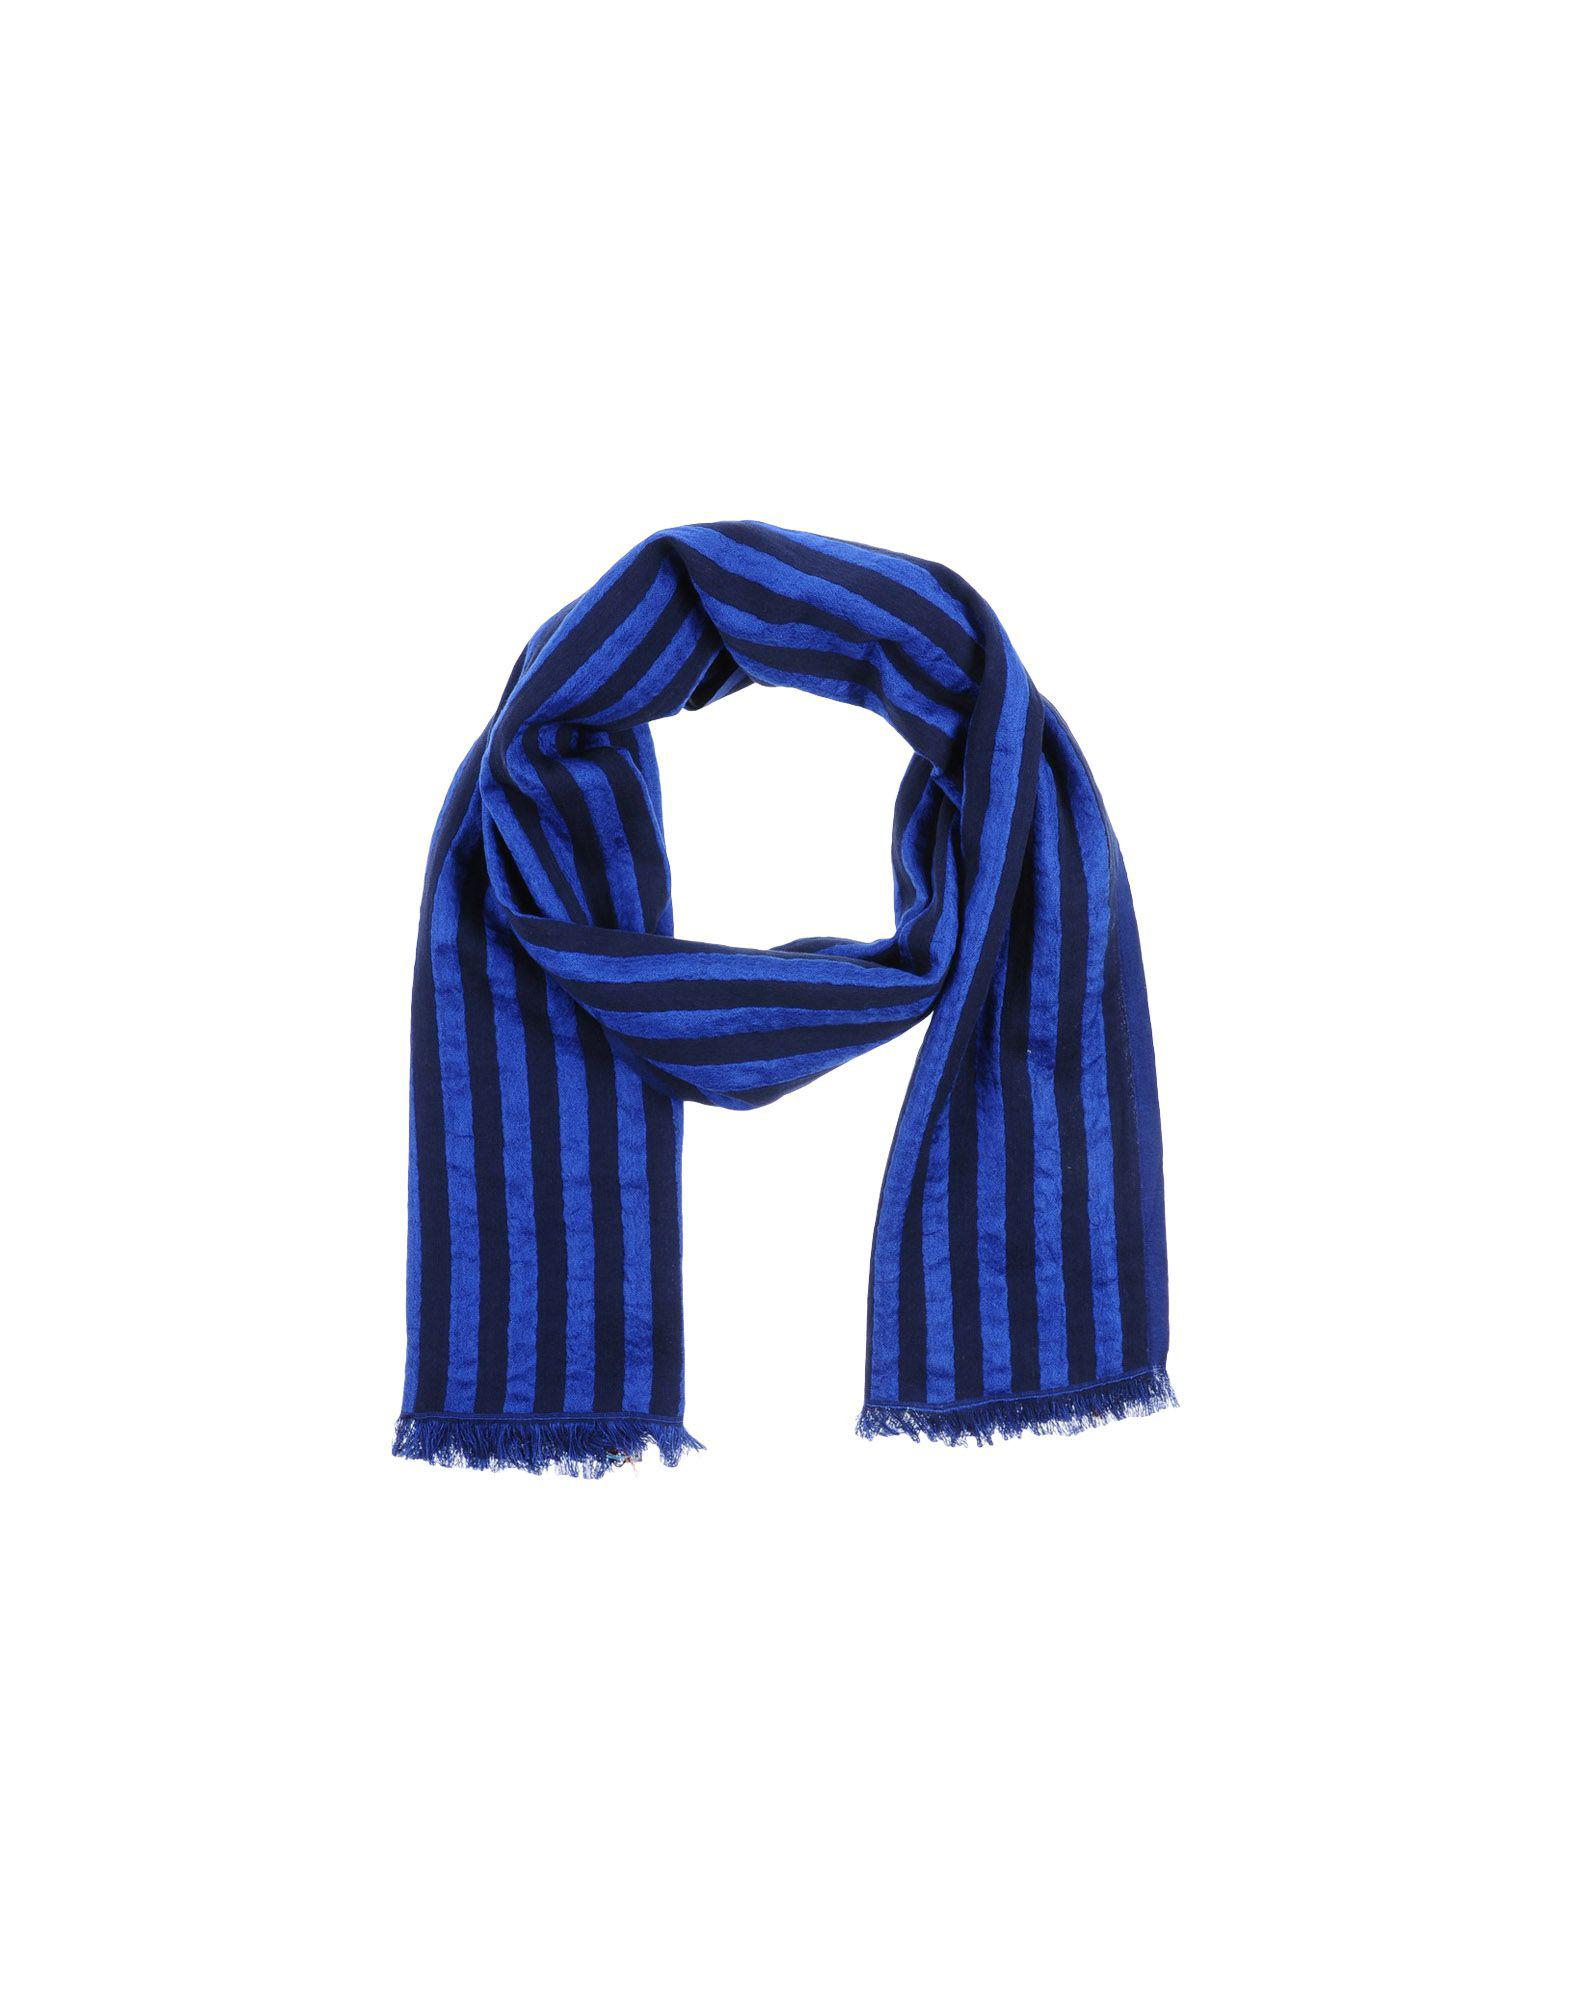 ACCESSORIES - Oblong scarves Paul Smith PxEZx2Eg